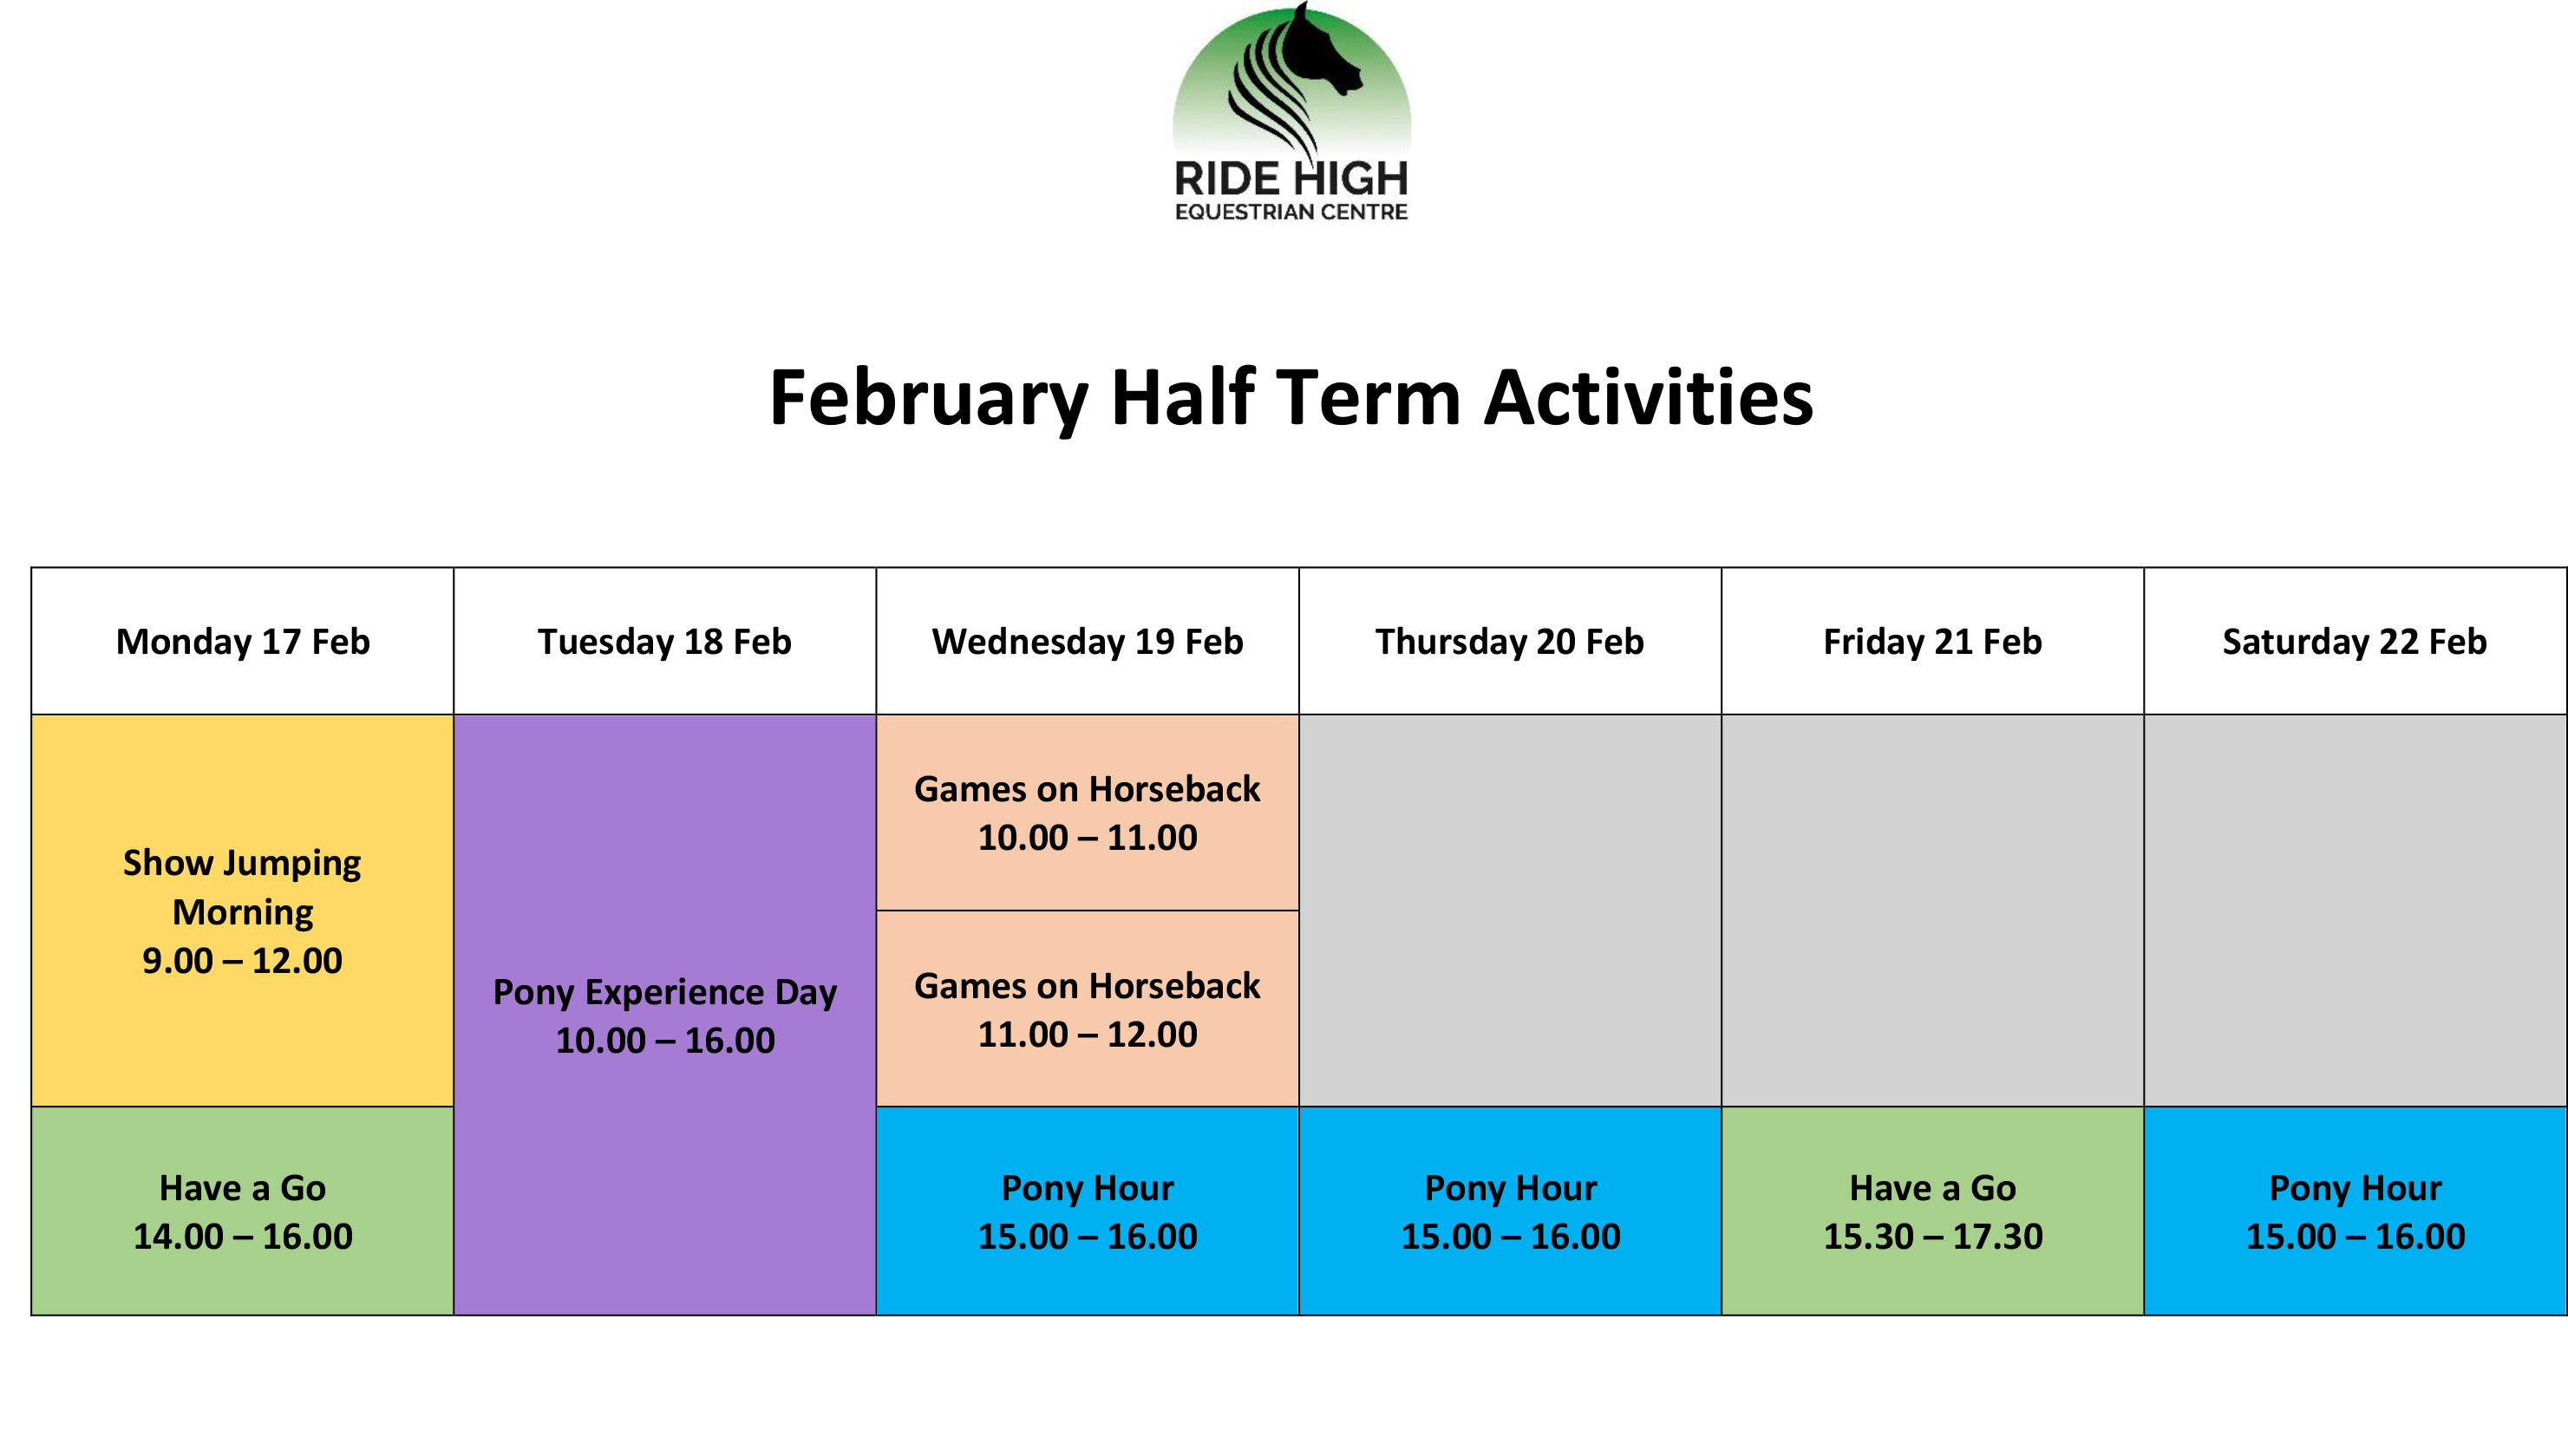 February Half Term at Ride High Equestrian Centre - revised schedule 09 01 20